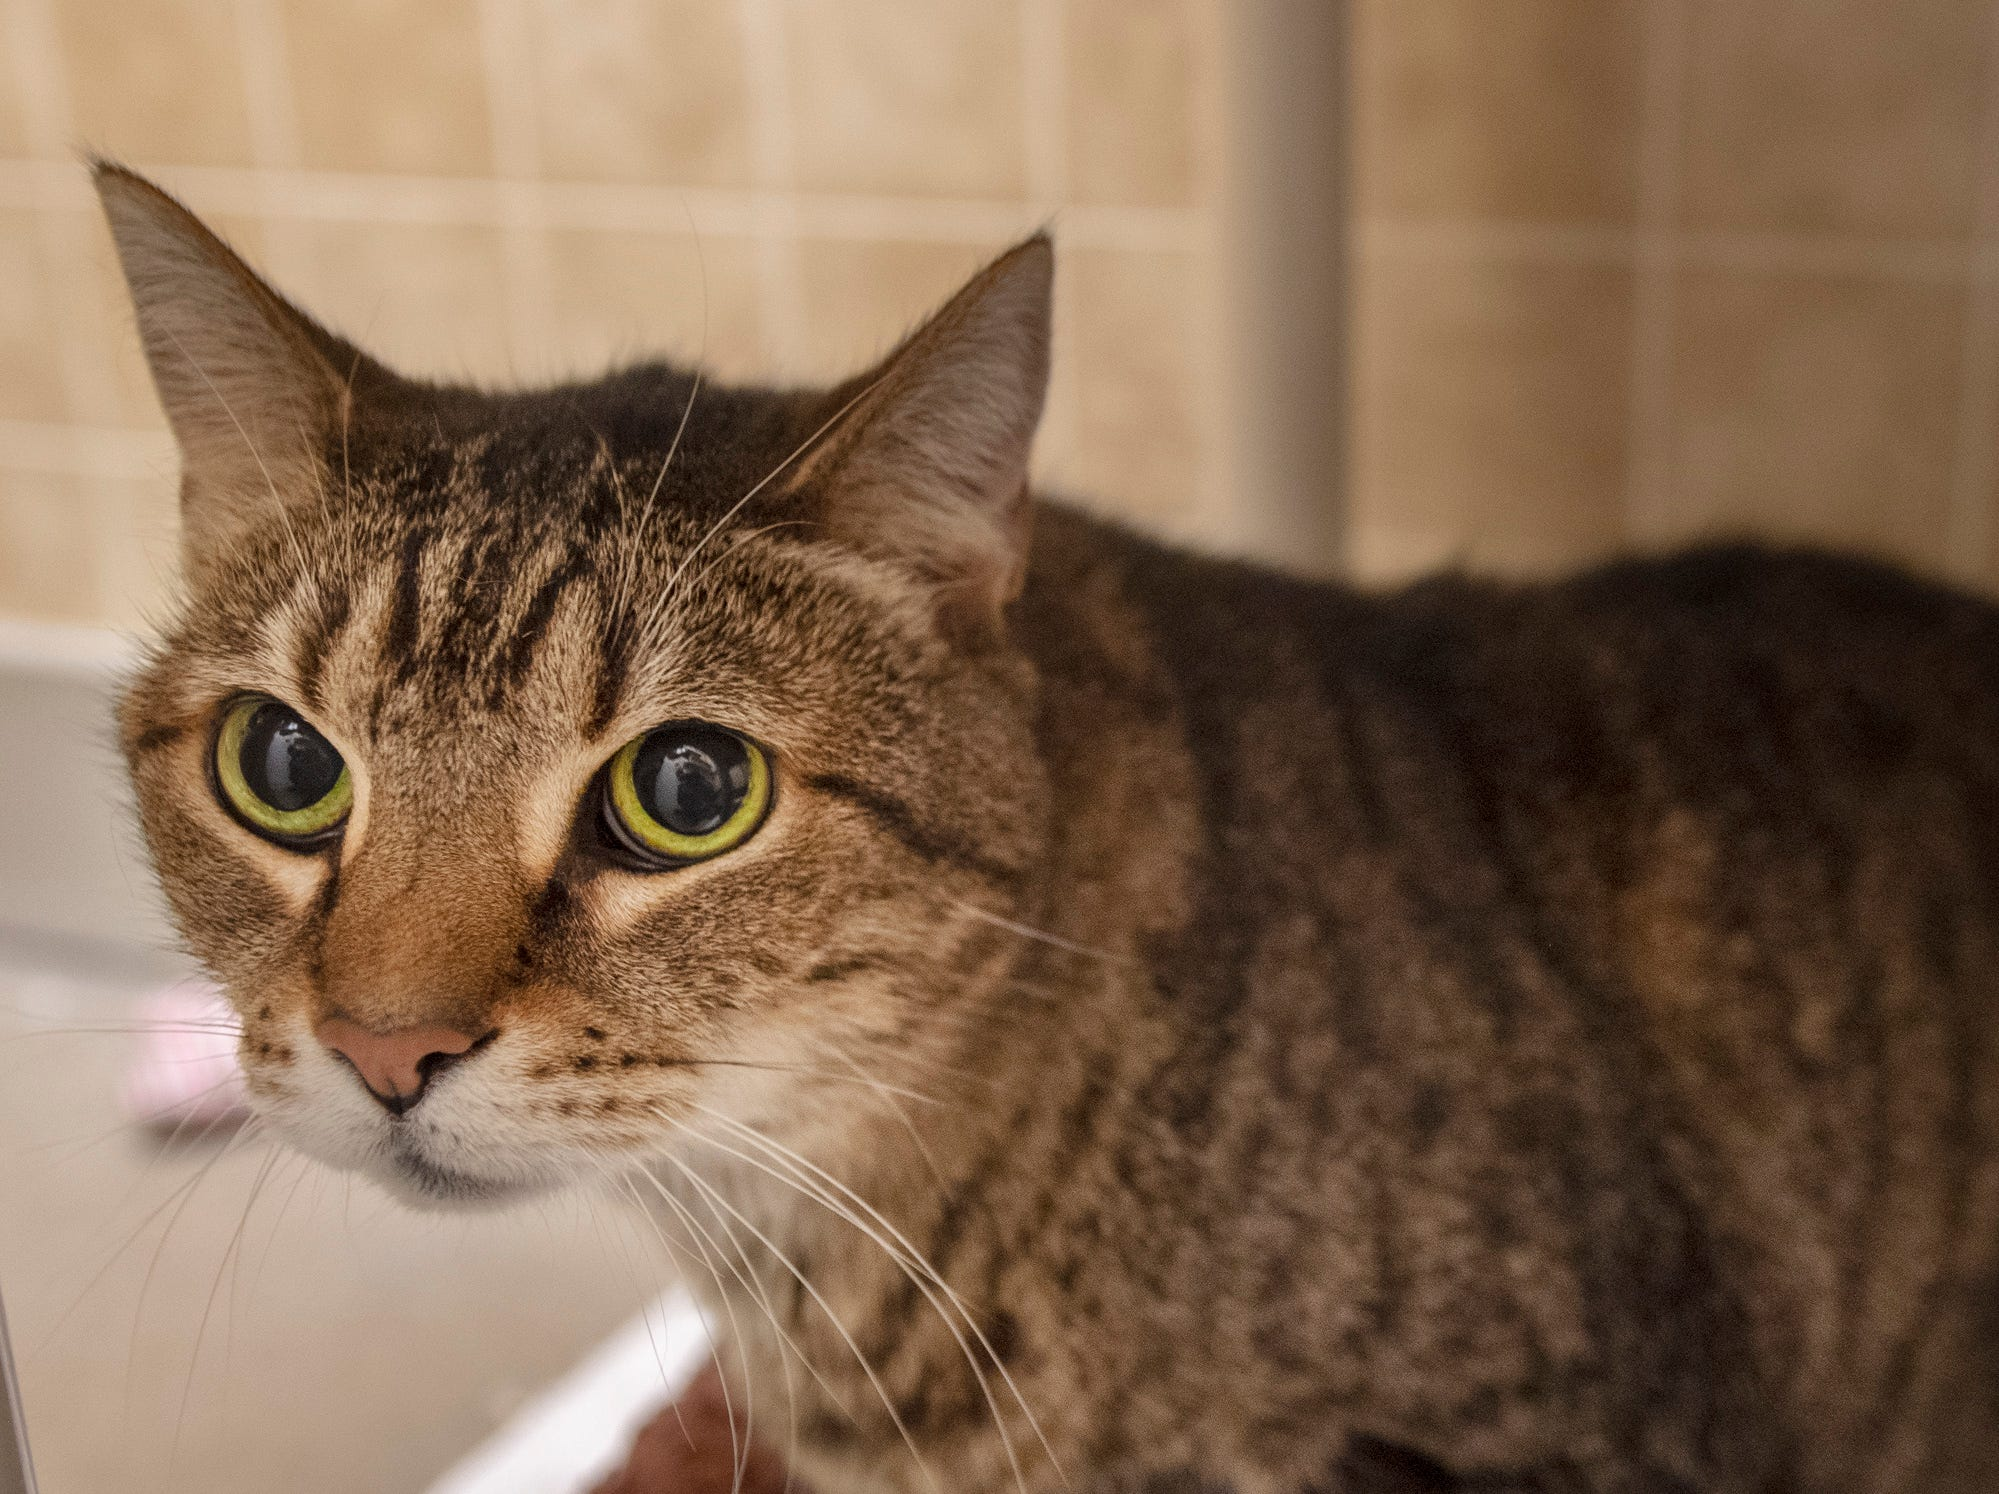 My name is Caddos I'm a 12 year-old brown tabby who was brought to the York County SPCA because my owner moved and couldn't afford to take me along. I'm very sweet, but timid until I get to know you.